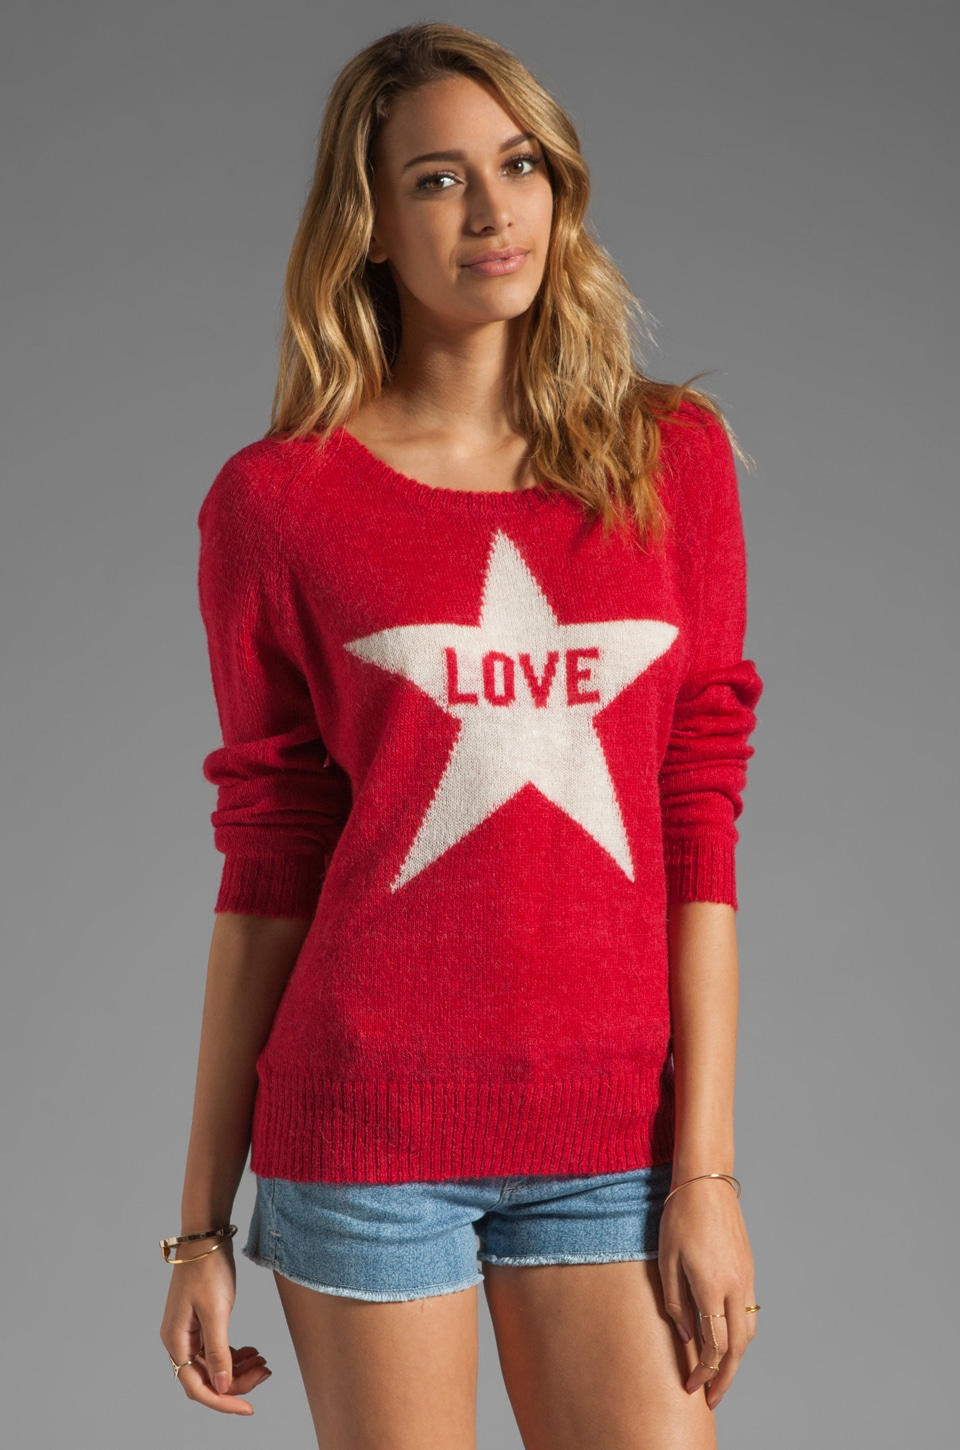 291 Light Weight Love Sweater in Red